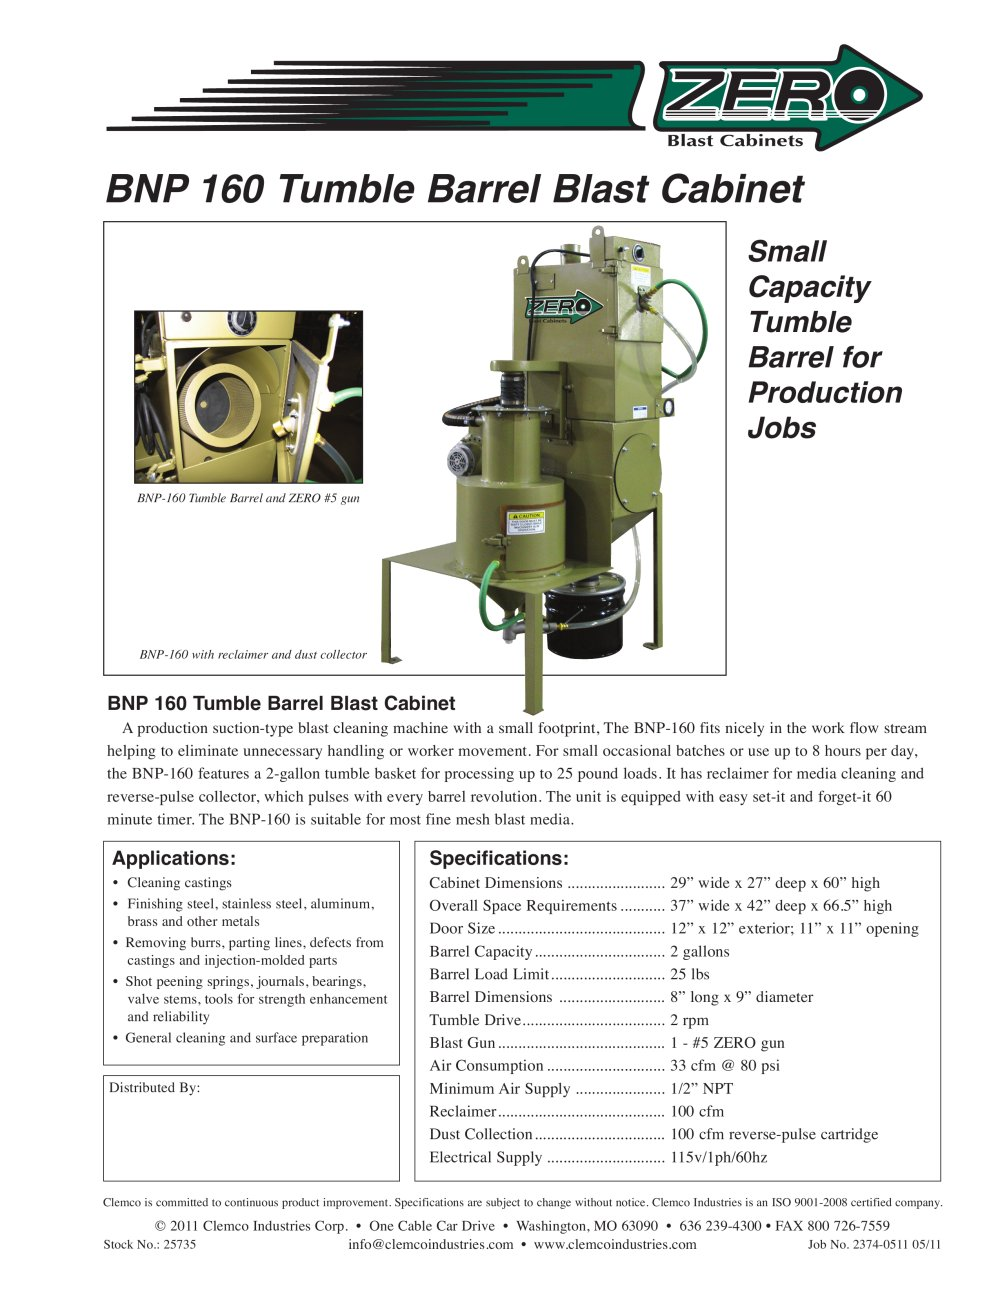 Clemco Industries Blast Cabinets Bnp 160 Tumble Barrel Blast Cabinet Clemco Industries Pdf